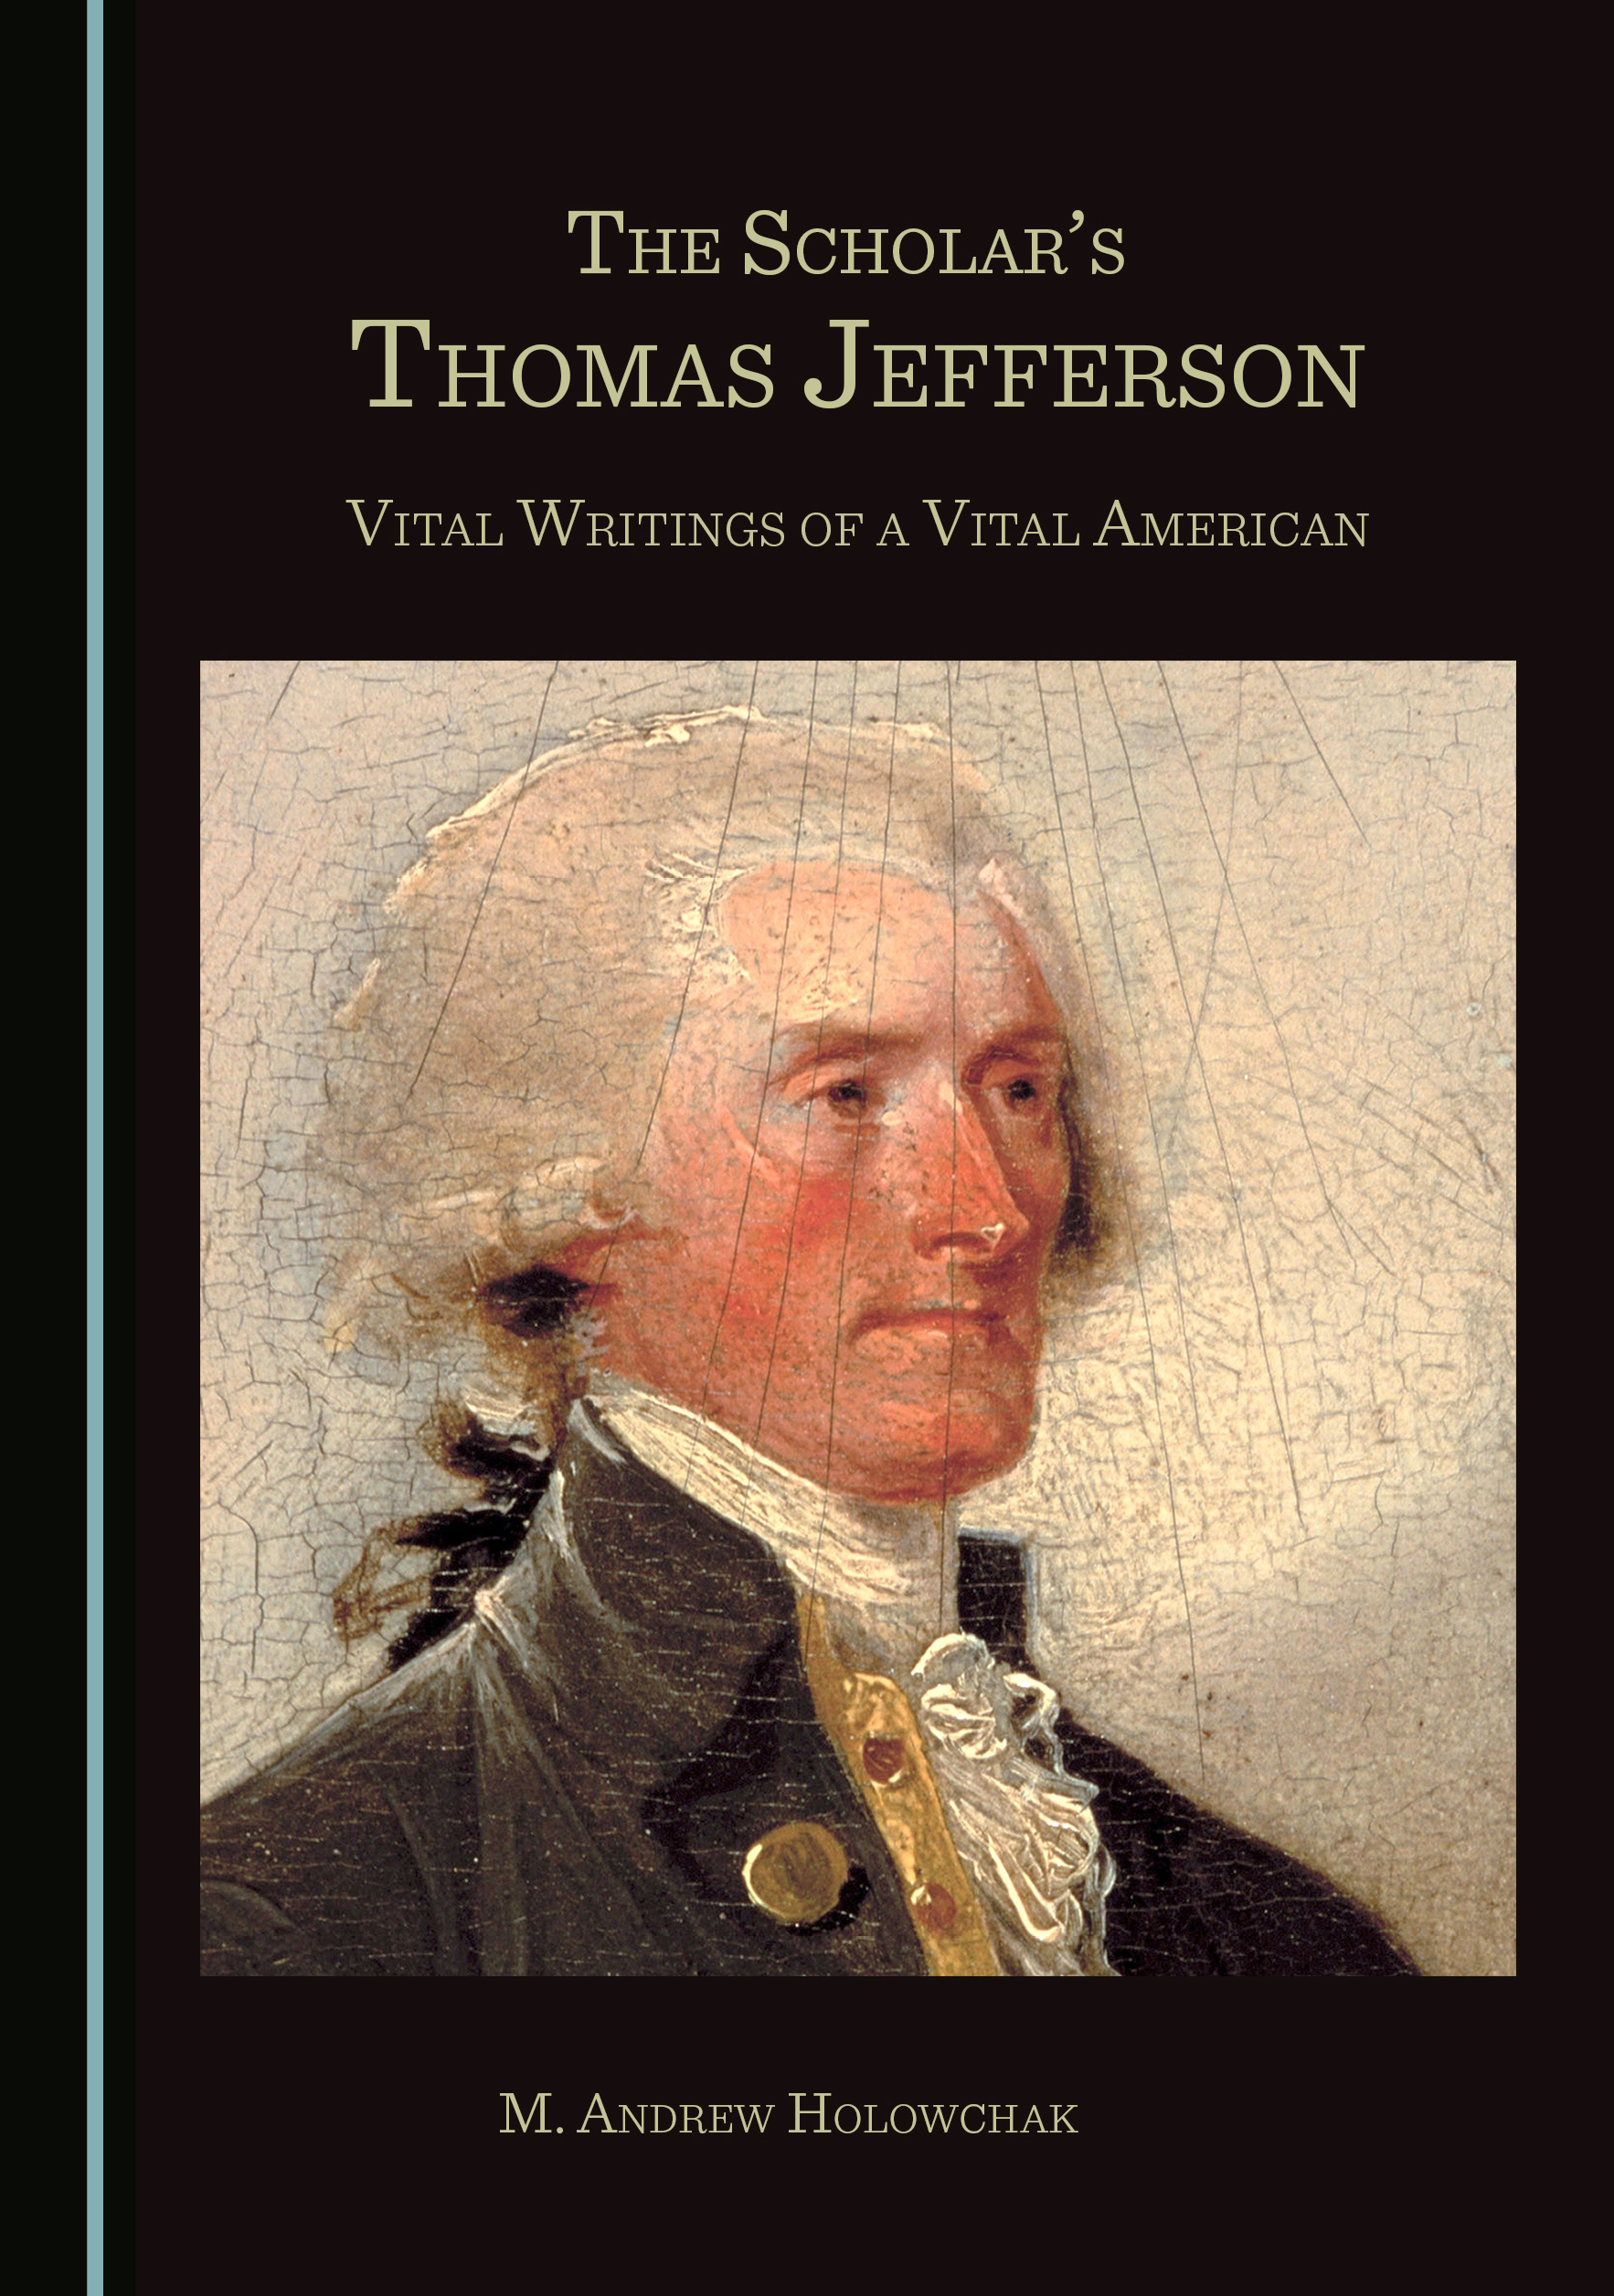 The Scholar's Thomas Jefferson: Vital Writings of a Vital American